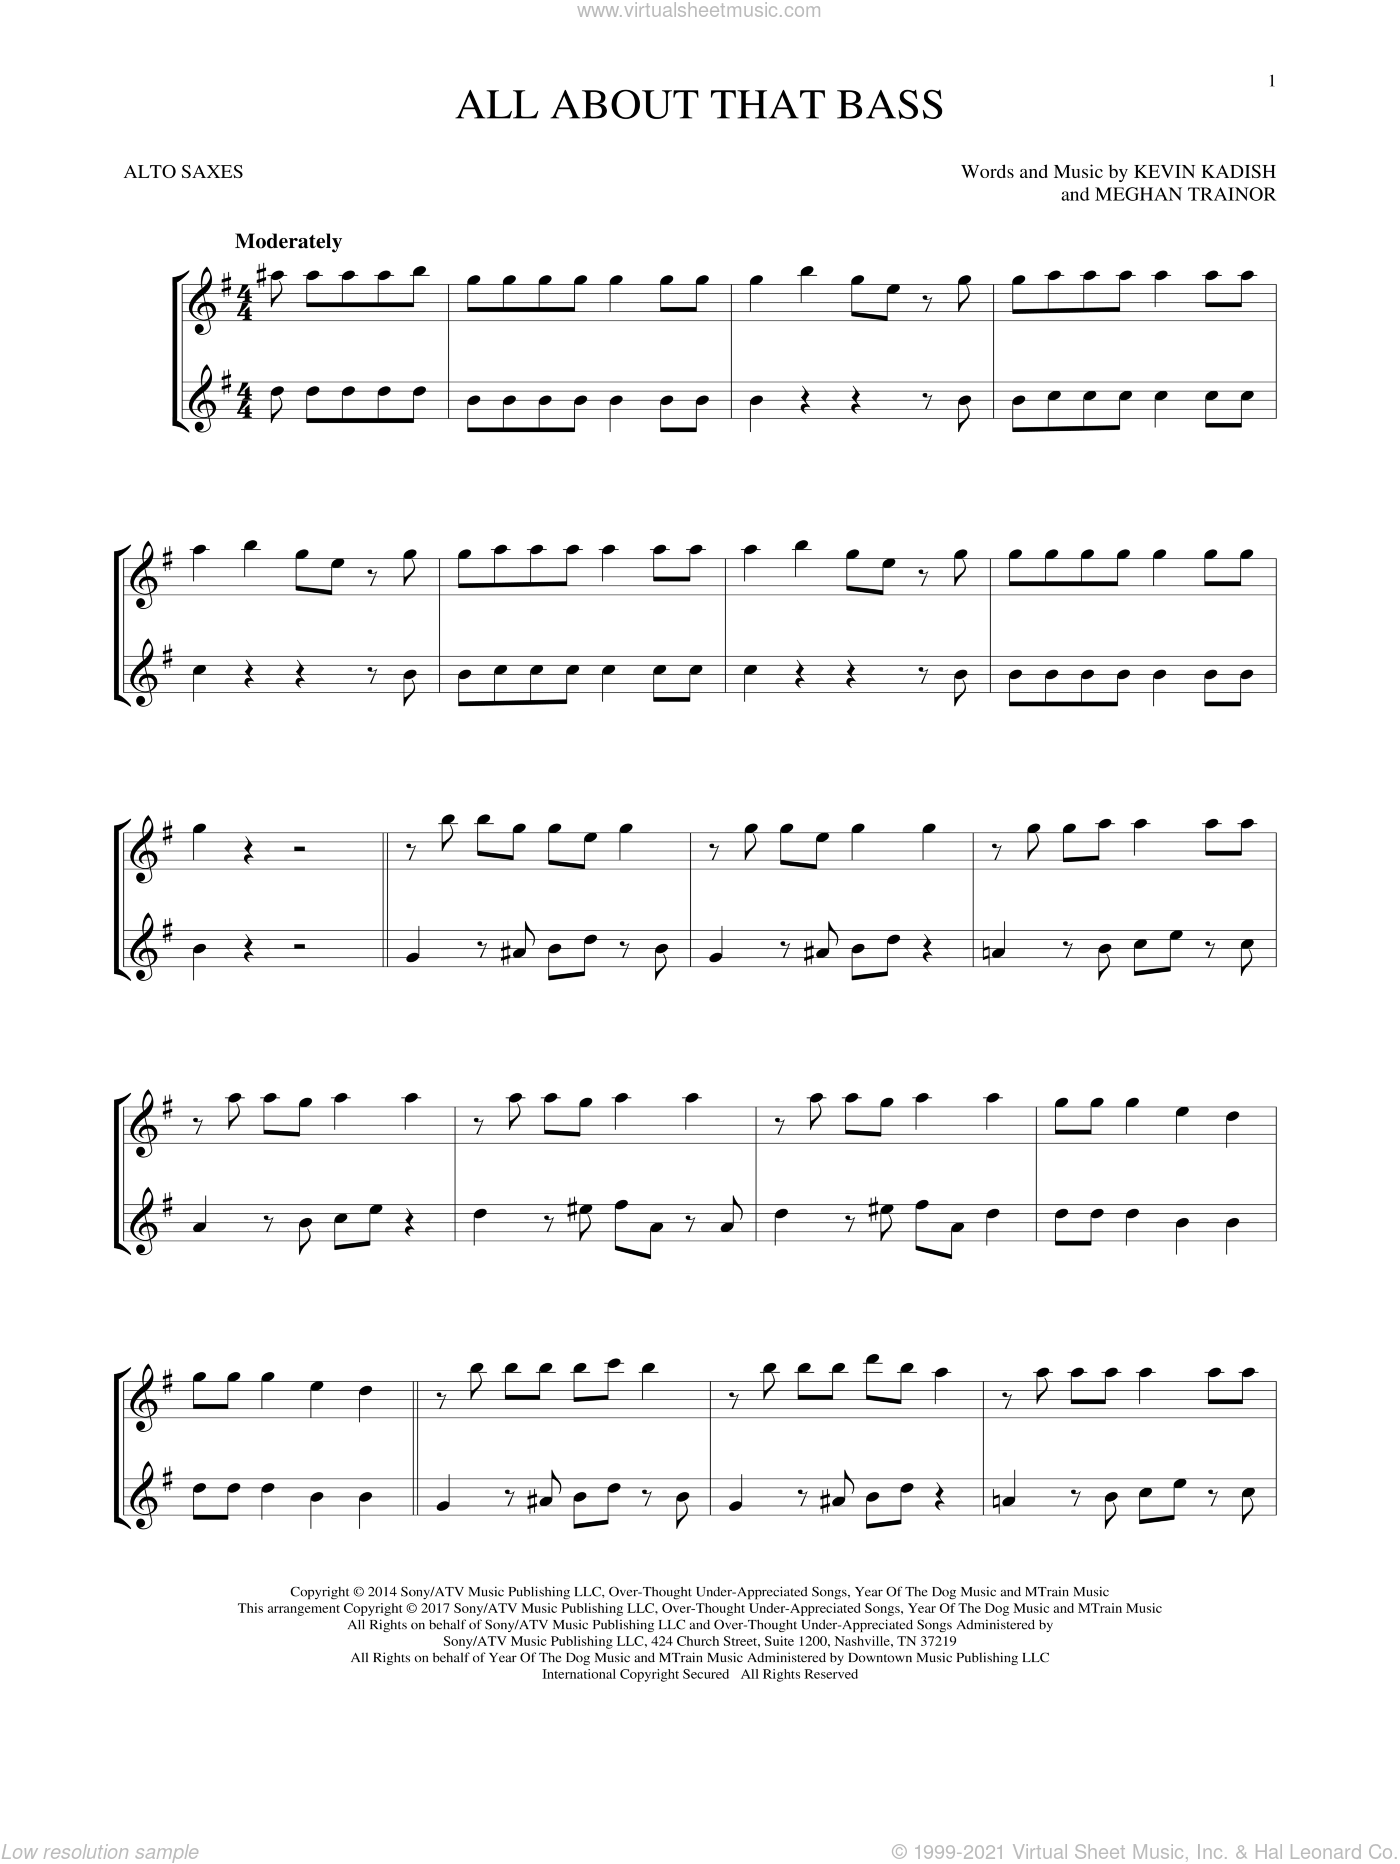 All About That Bass sheet music for two alto saxophones (duets) by Meghan Trainor and Kevin Kadish, intermediate skill level